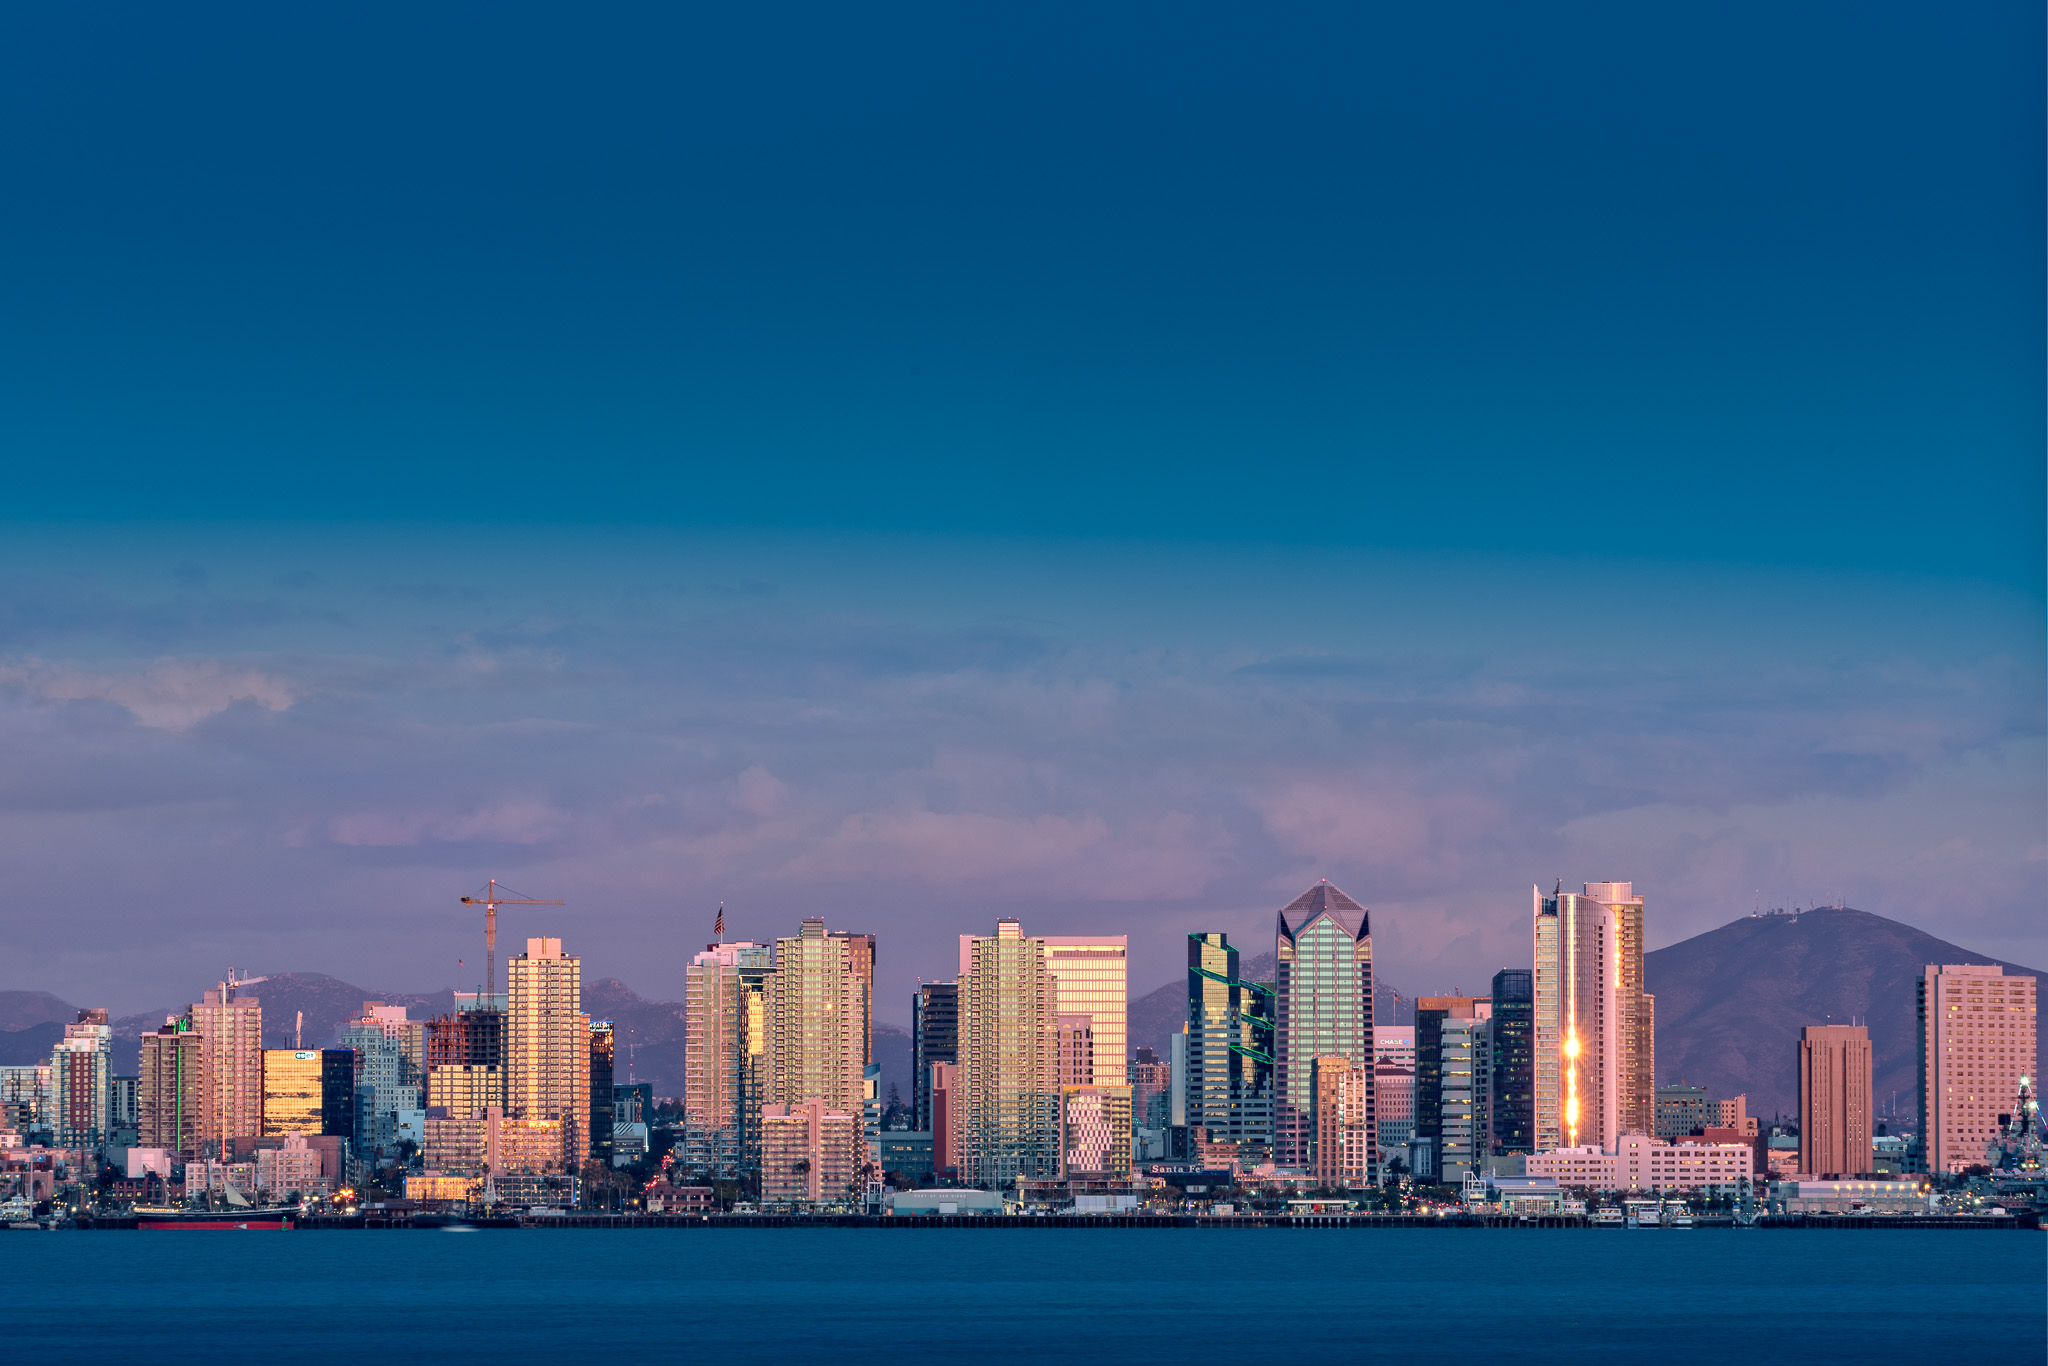 My composite image of the San Diego skyline using this technique.